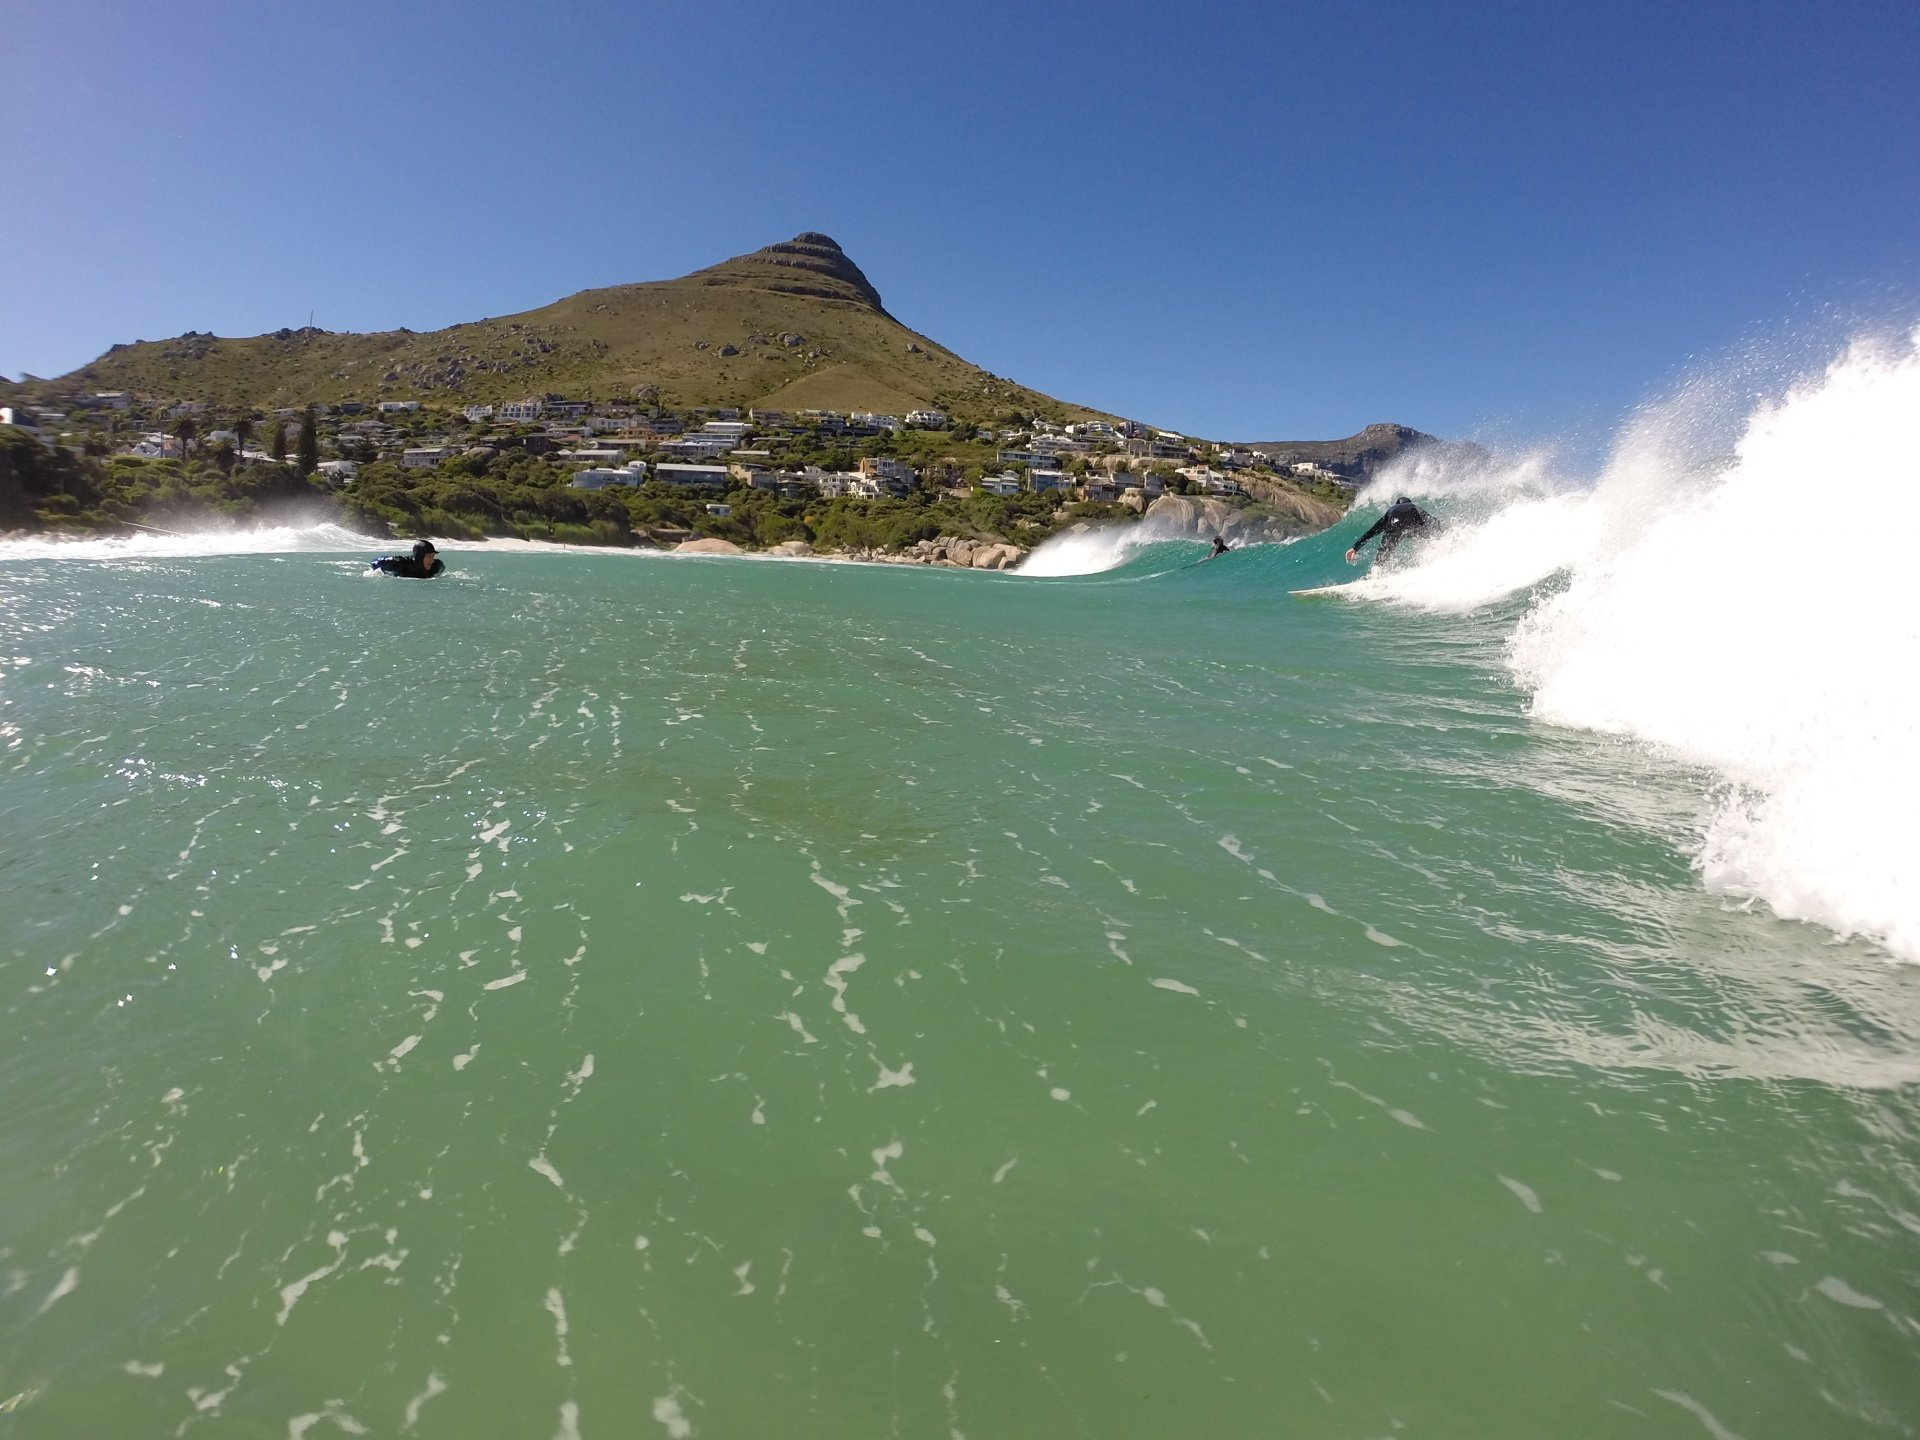 Lourens De Bruyn's photo of Cape Town